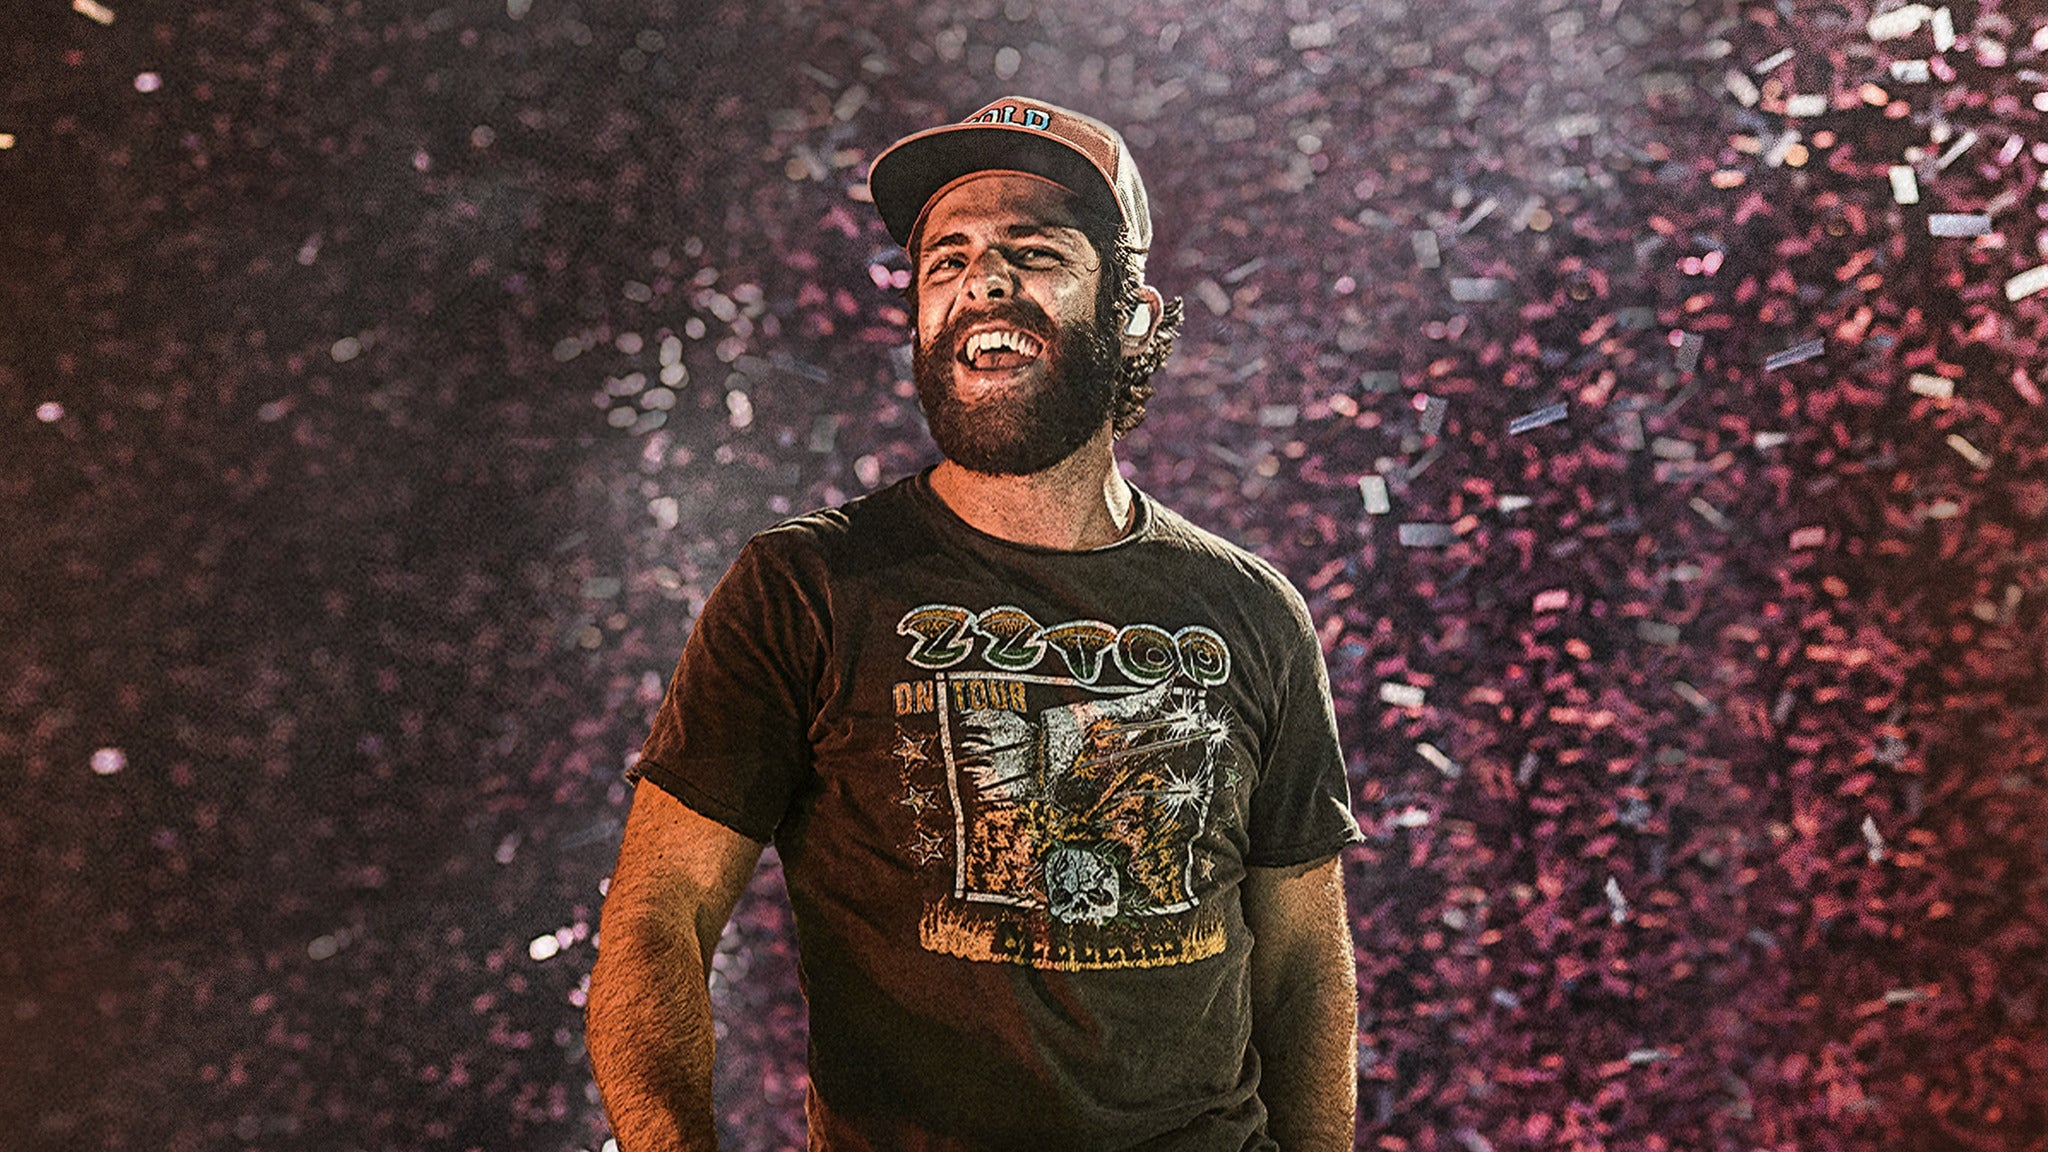 Thomas Rhett: The Center Point Road Tour 2021 presale code for early tickets in Orange Beach